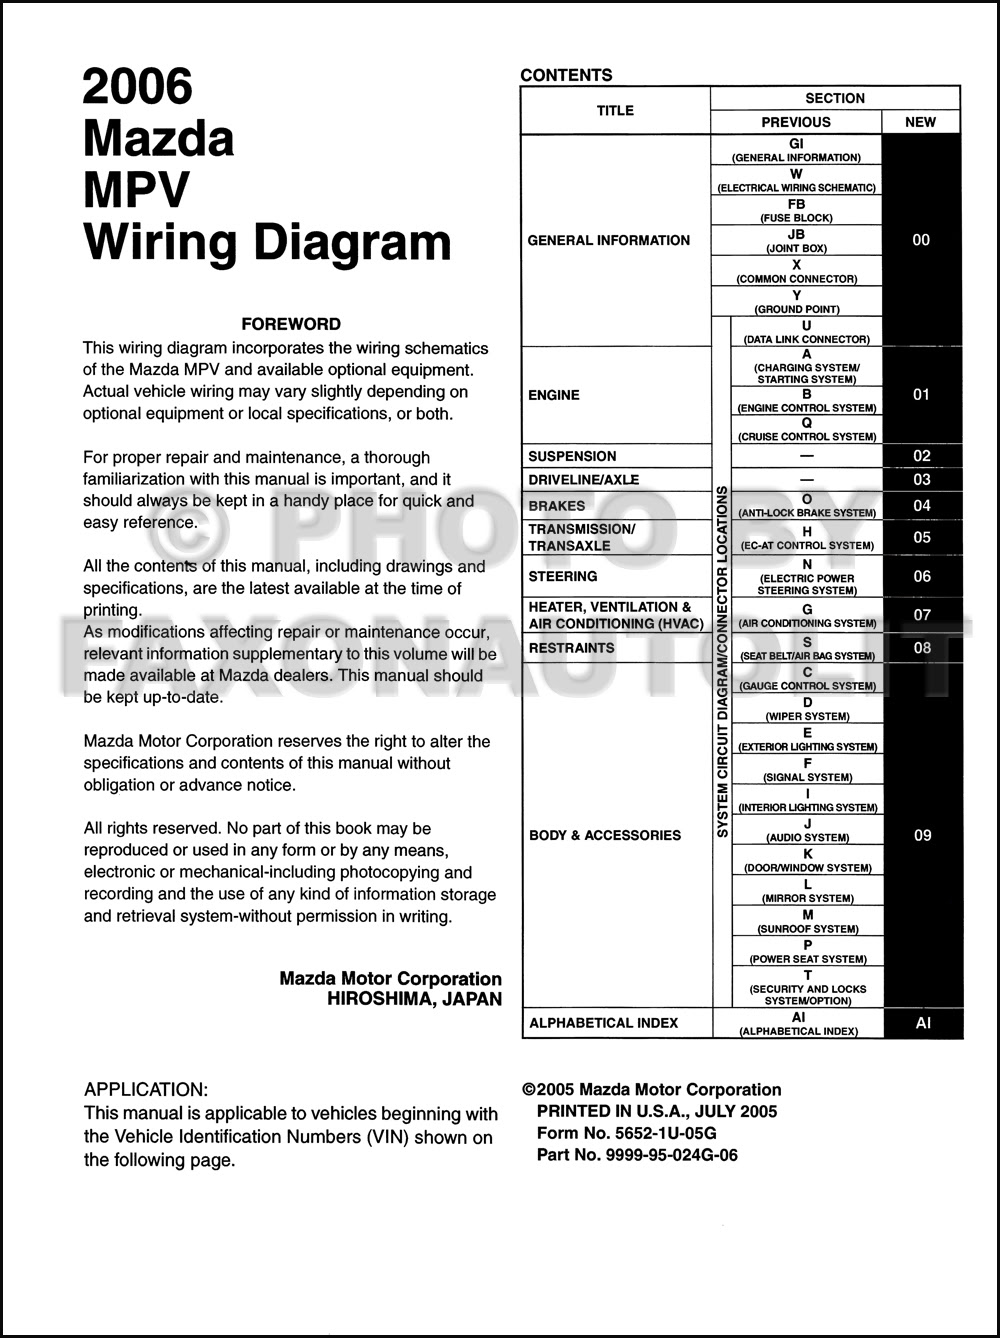 DIAGRAM] Mazdaspeed 3 Stereo Wiring Diagram FULL Version HD Quality Wiring  Diagram - SAVEONWIRING.MAMI-WATA.FRMami Wata